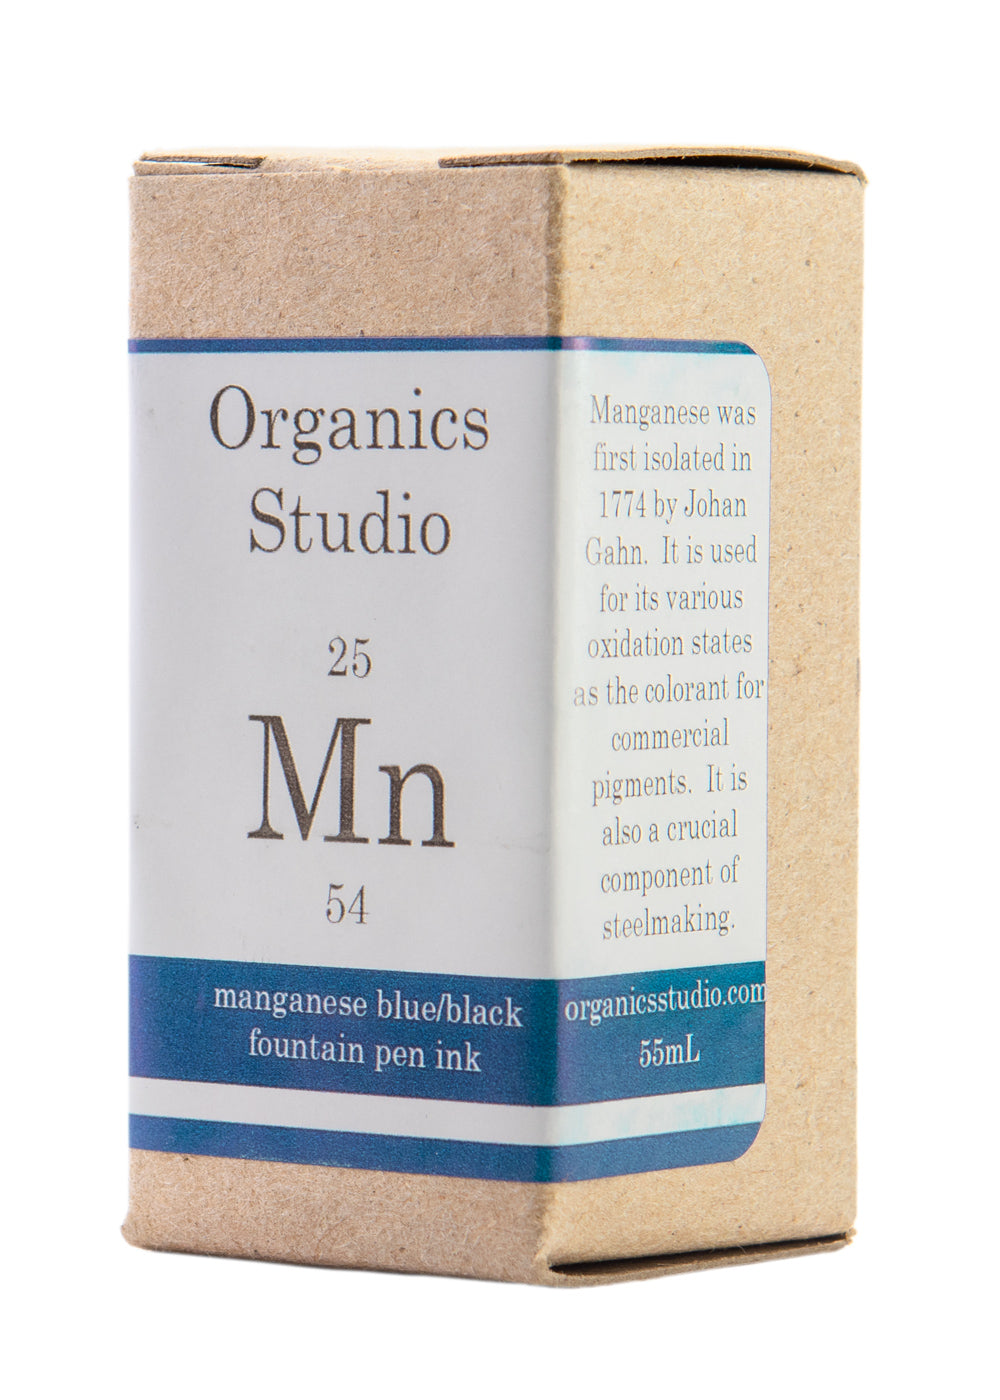 Organics Studio Elements Manganese Blue Black